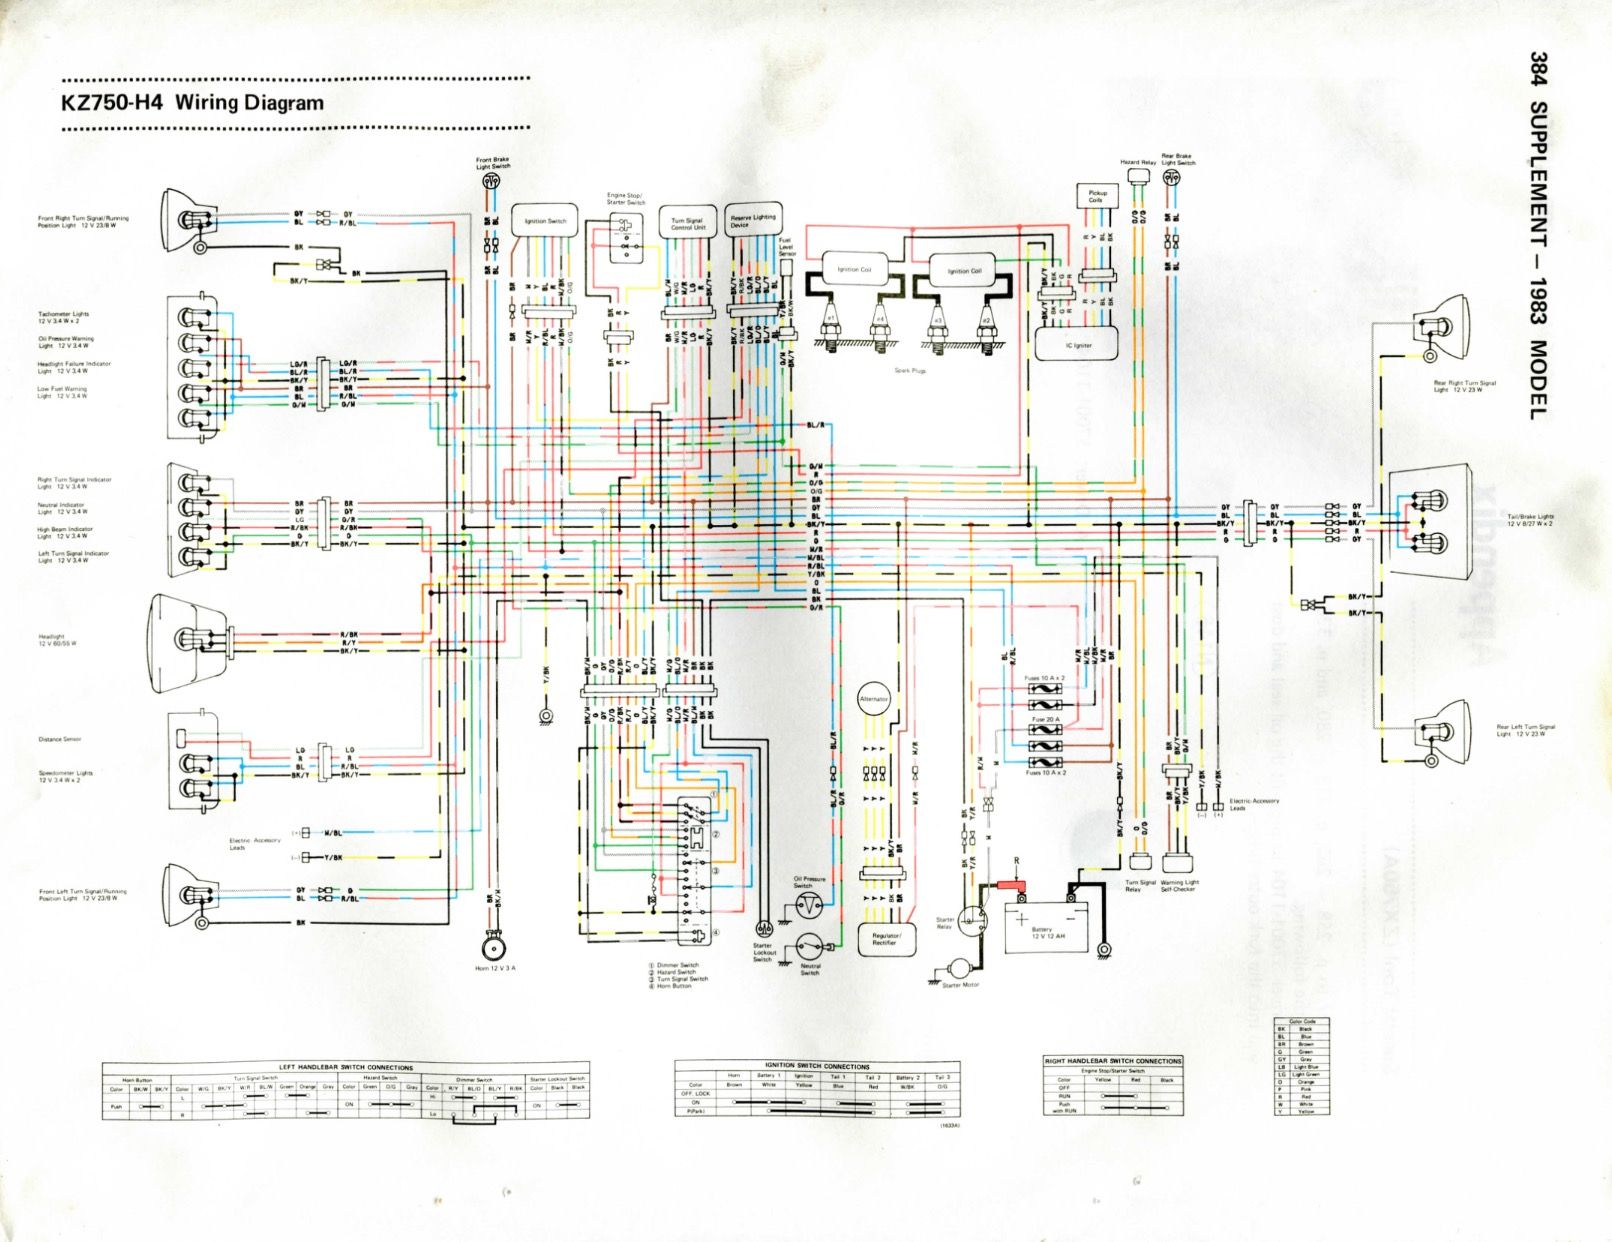 hight resolution of kawasaki kz750 wiring diagram